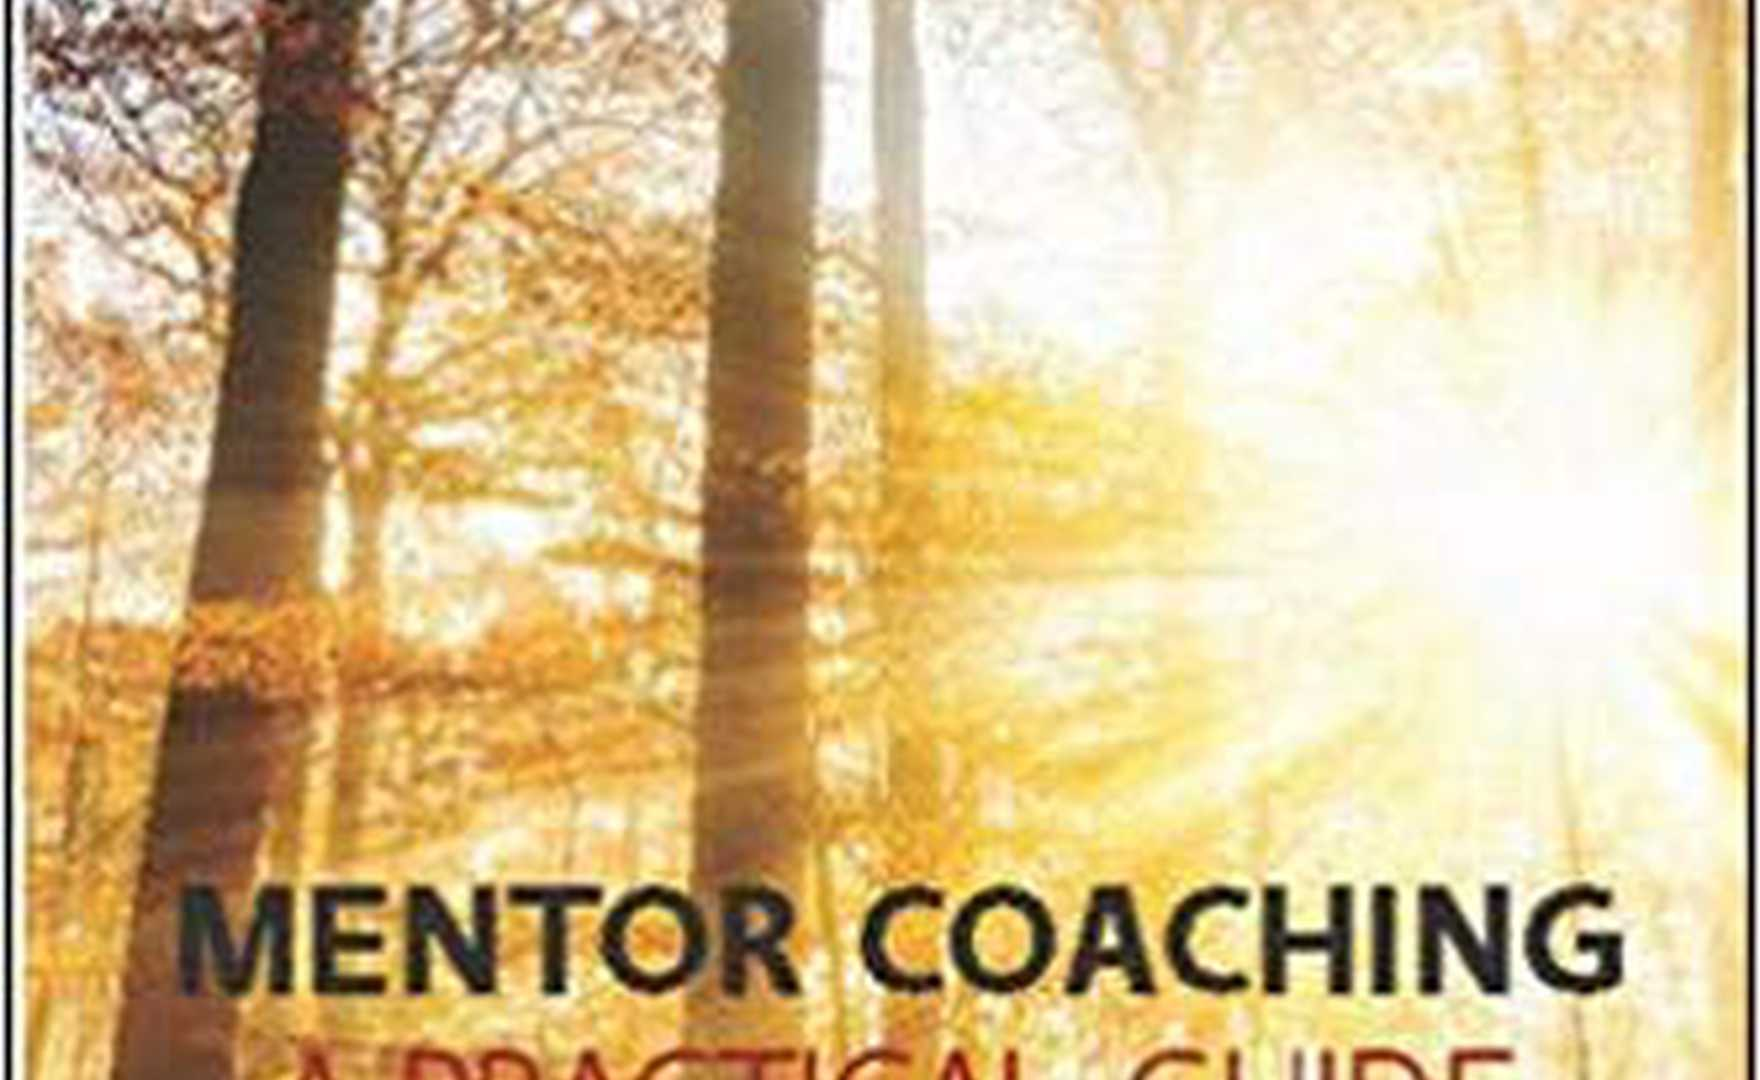 Mentor Coaching by Clare Norman